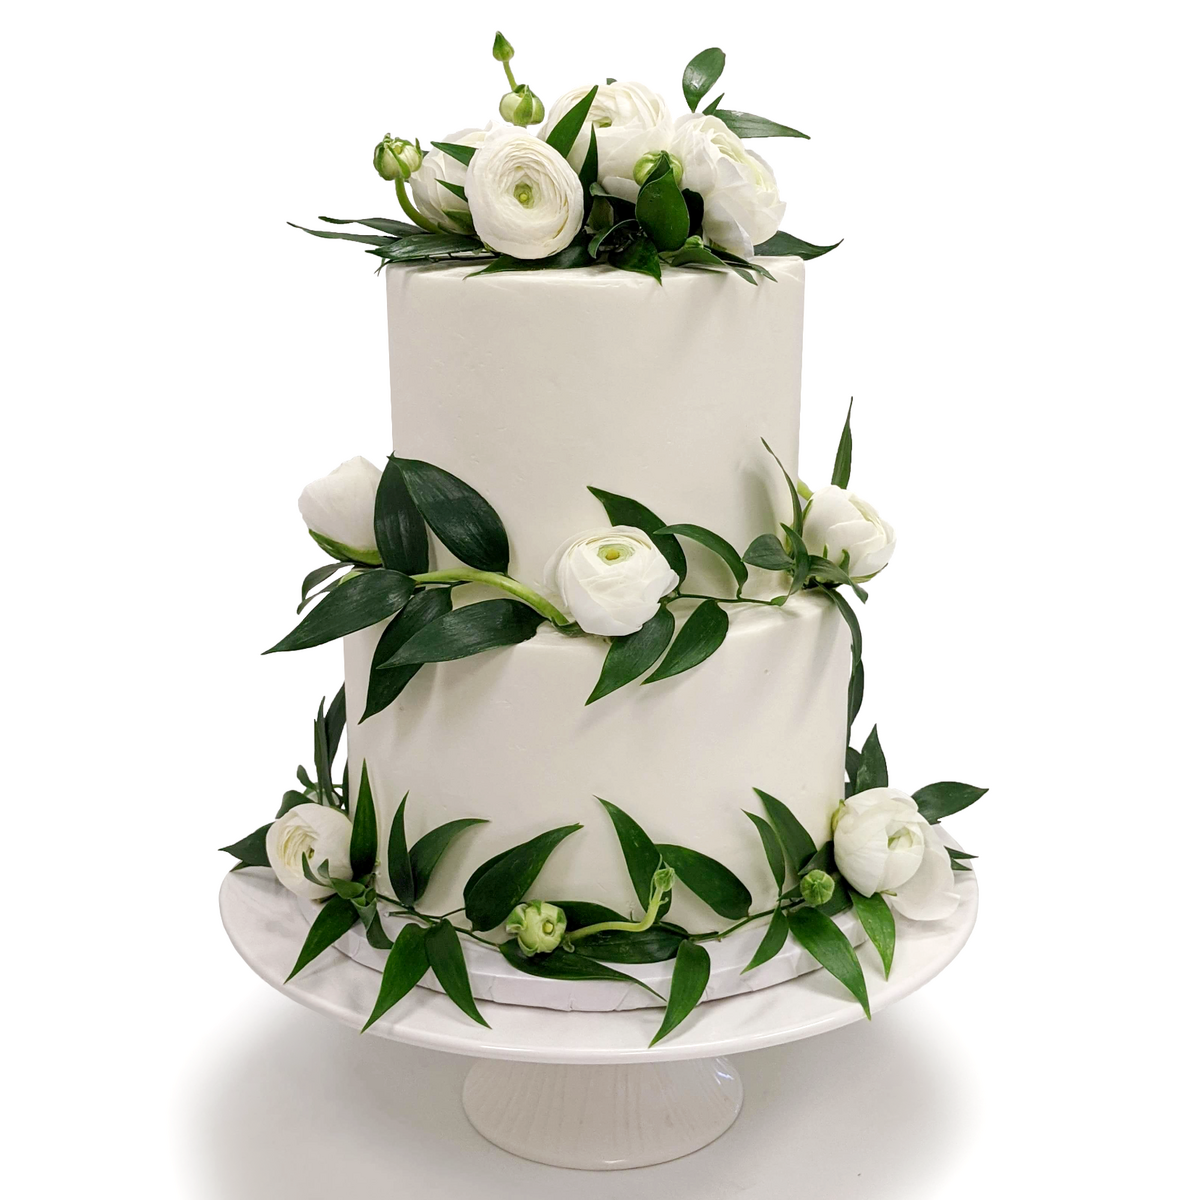 Whippt Kitchen - wedding cake peonies and eucalyptus July 2020 2